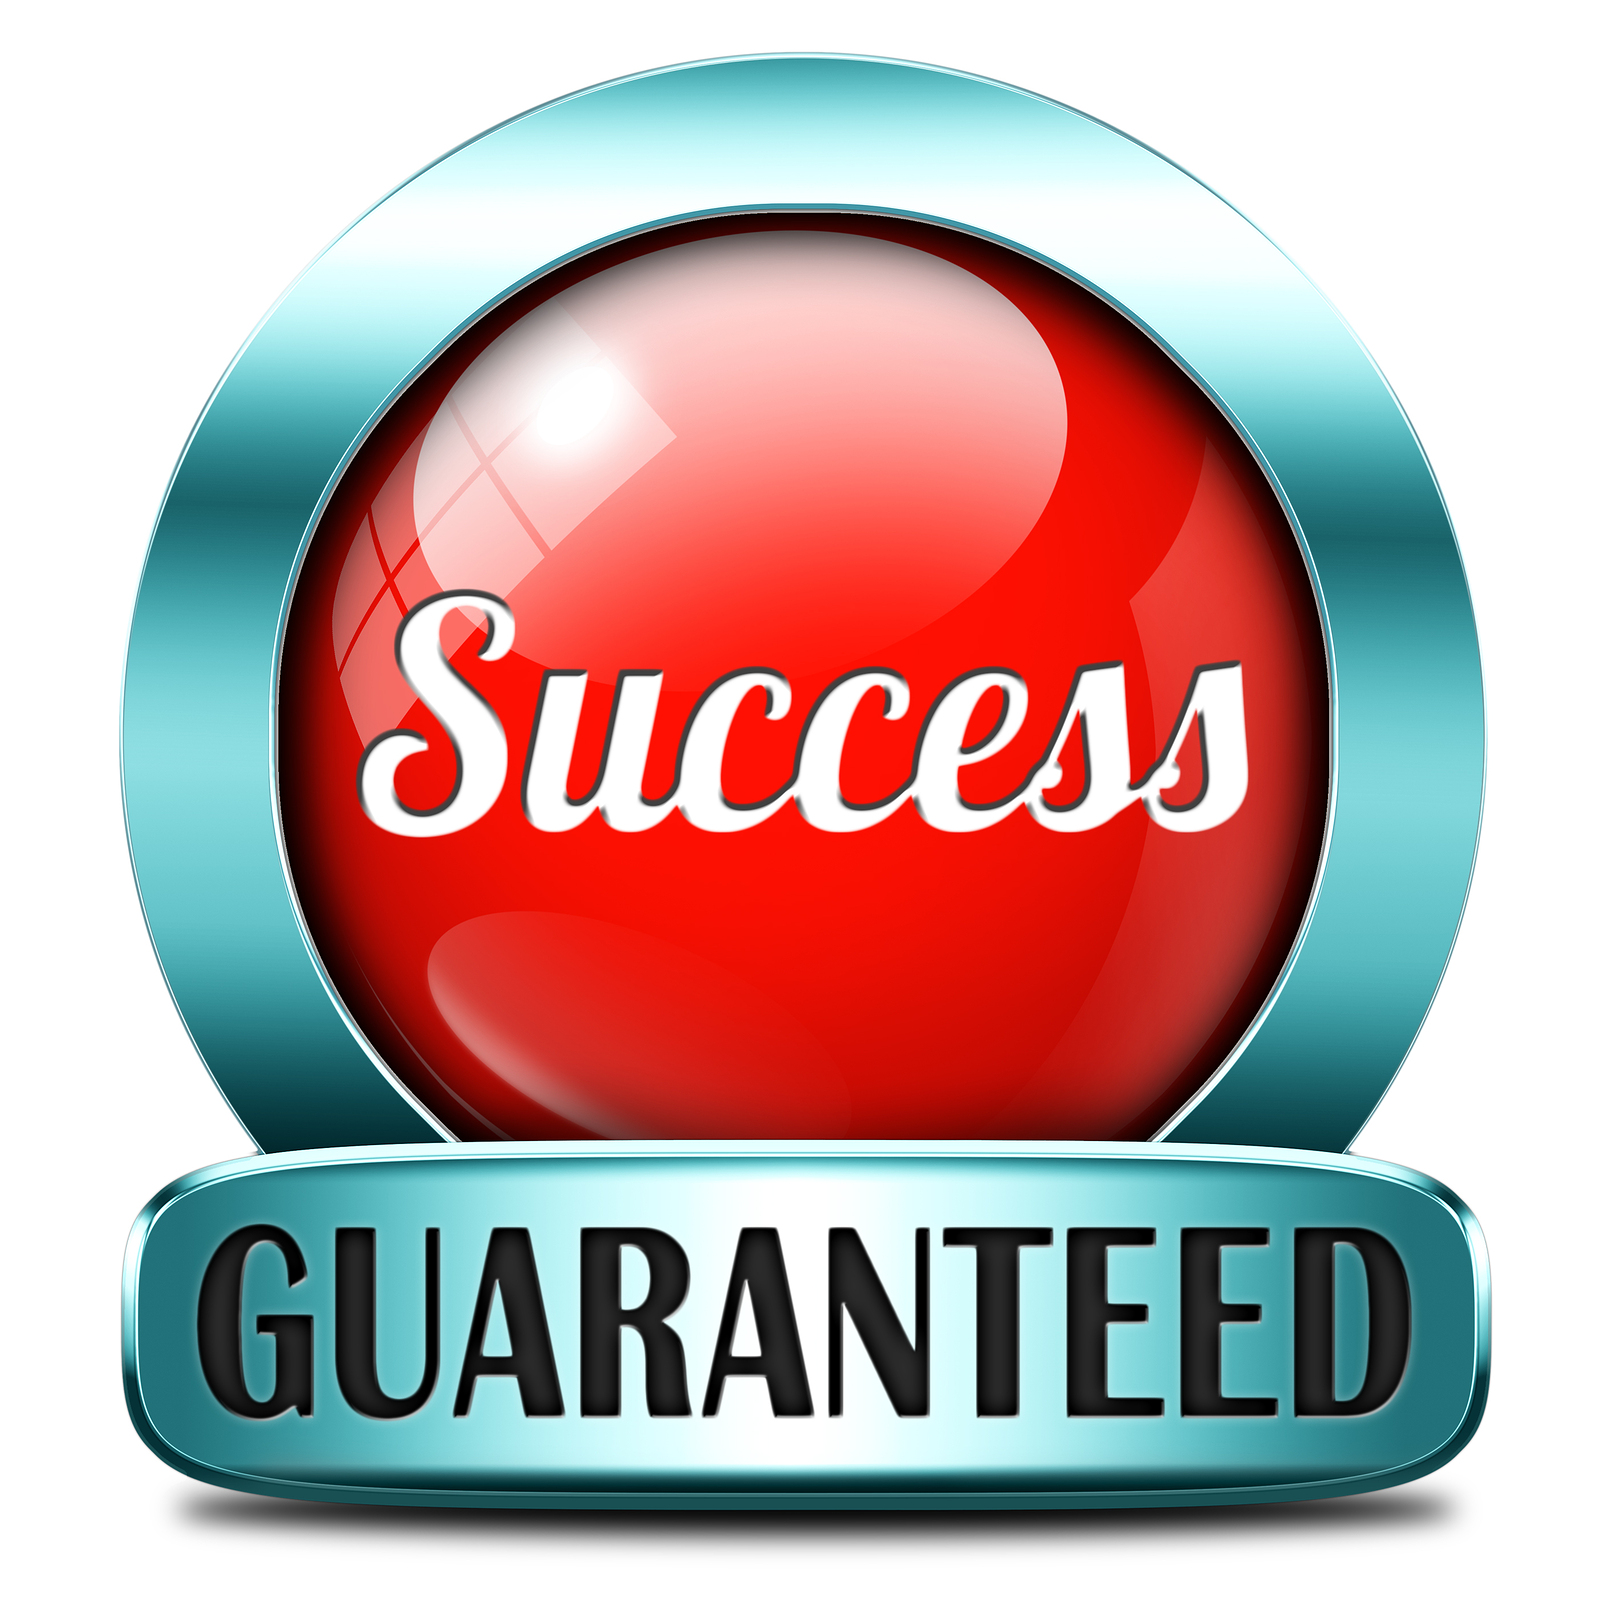 success guaranteed in life business and live in happiness and jo